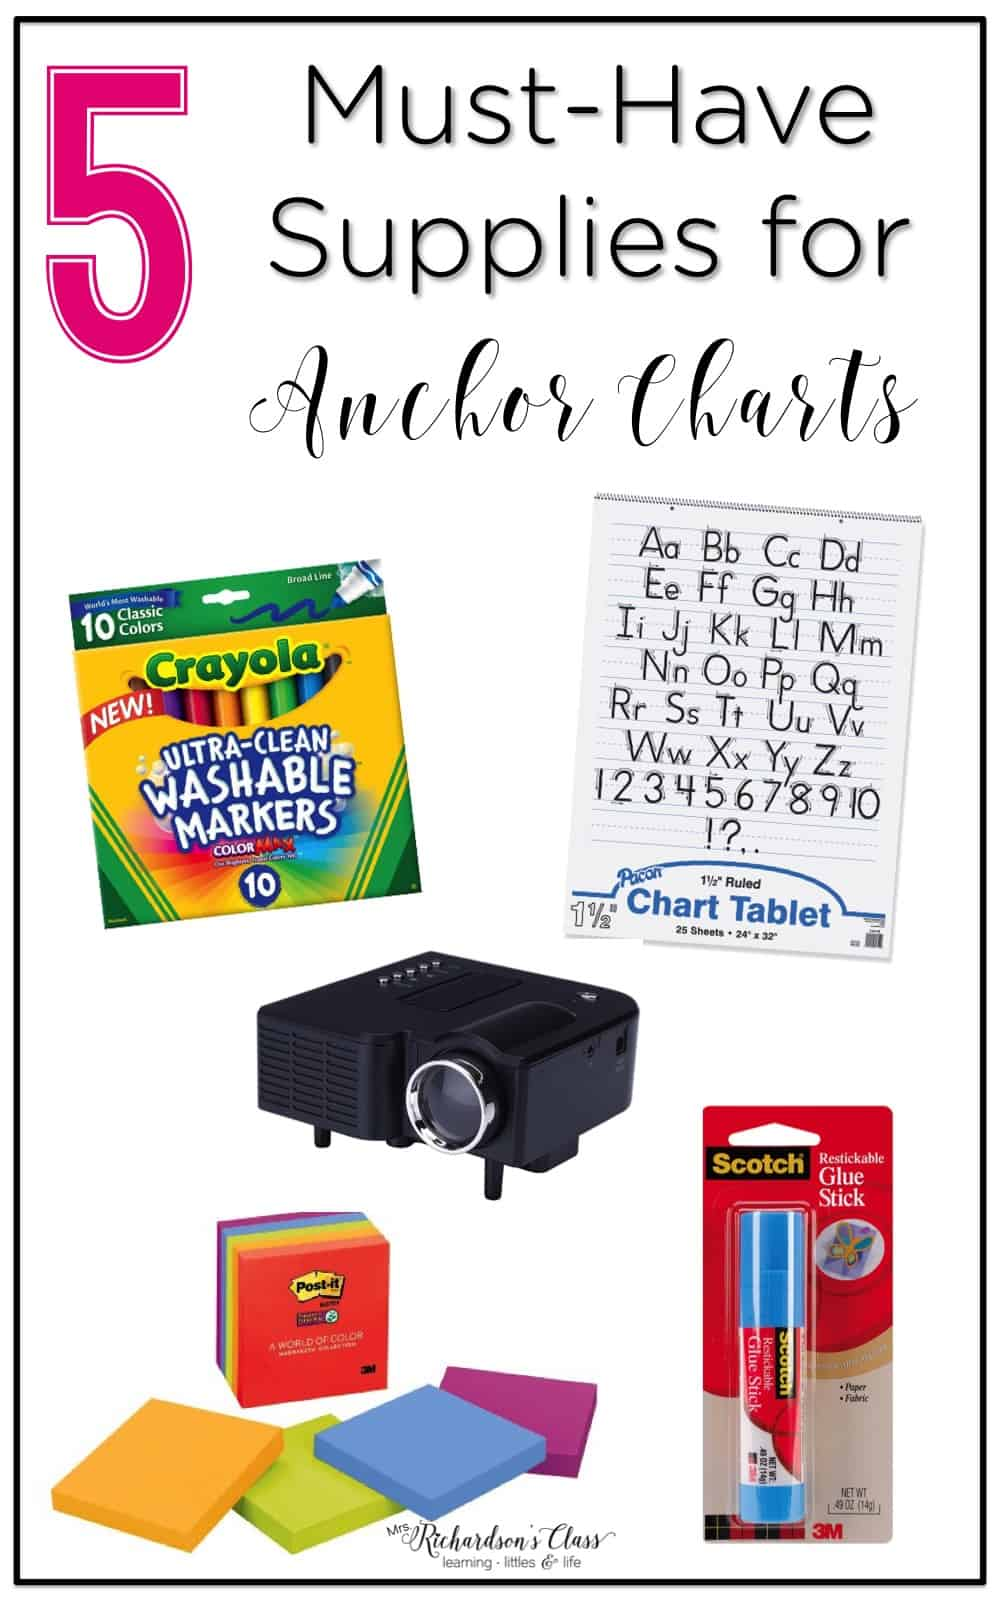 These supplies will make anchor chart creating a breeze! The reusable restickable glue stick is a MUST!